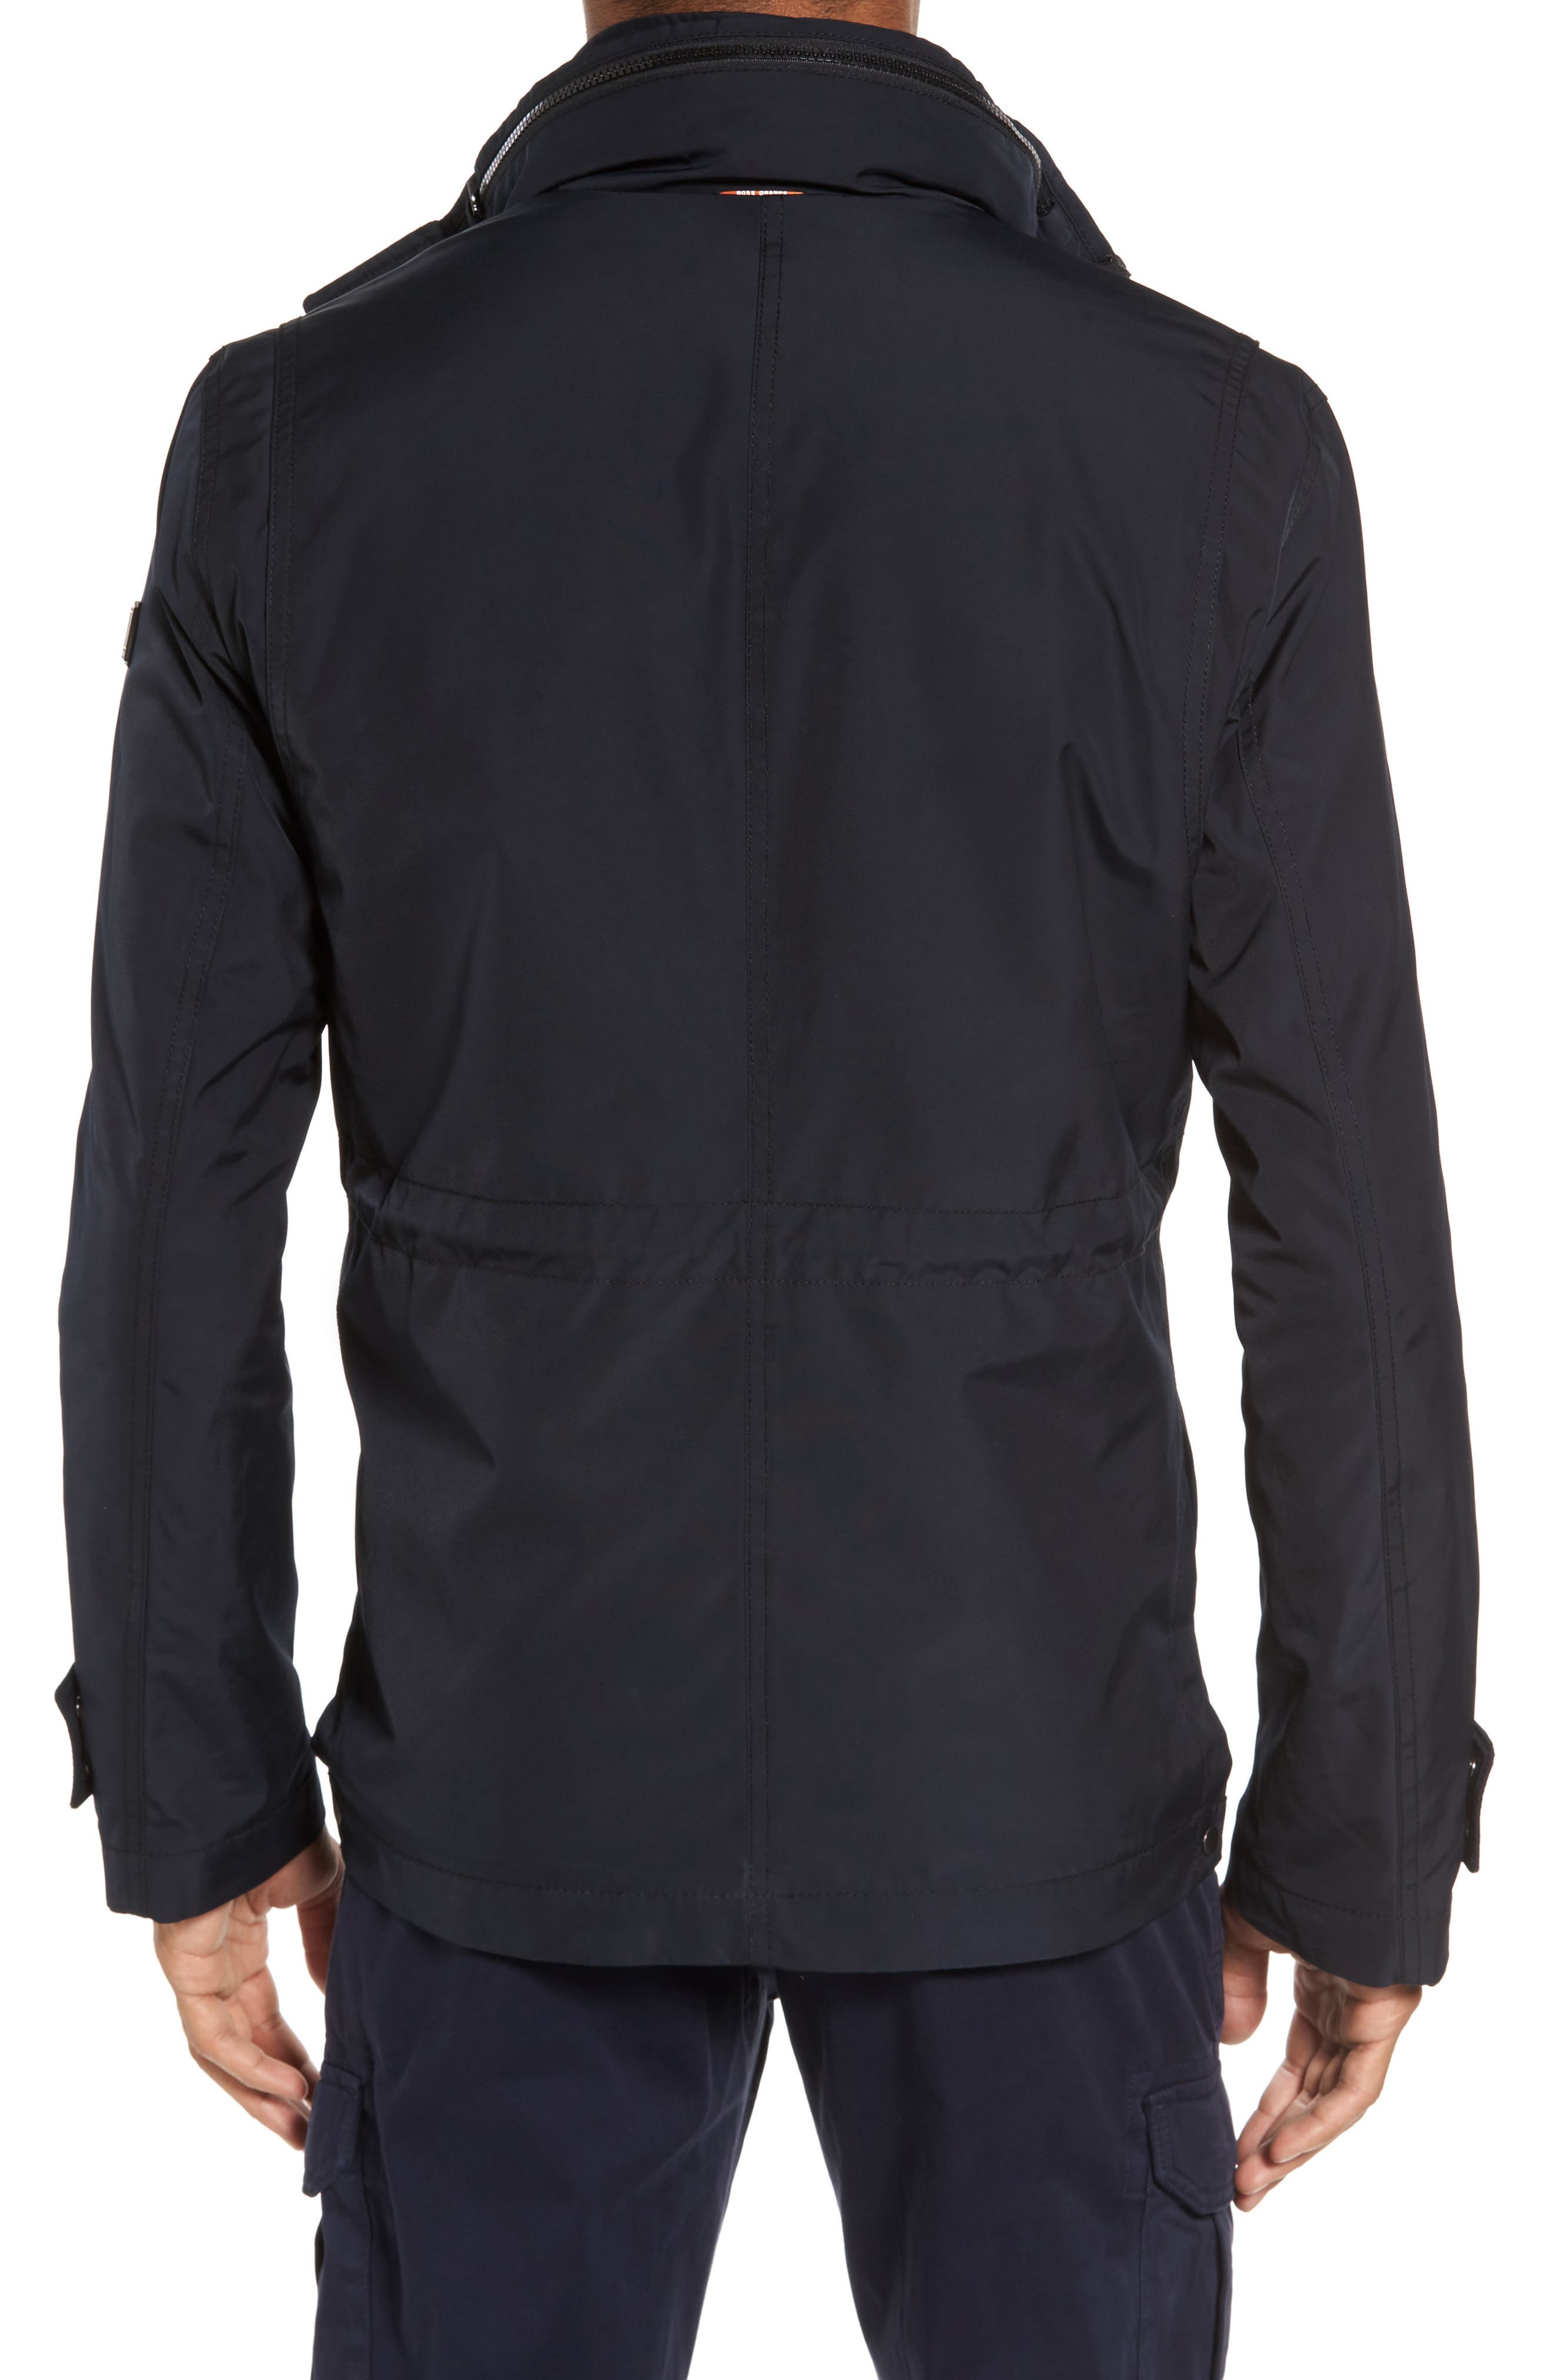 Onick Water Repellent 3-in-1 Field Jacket,                             Alternate thumbnail 2, color,                             001